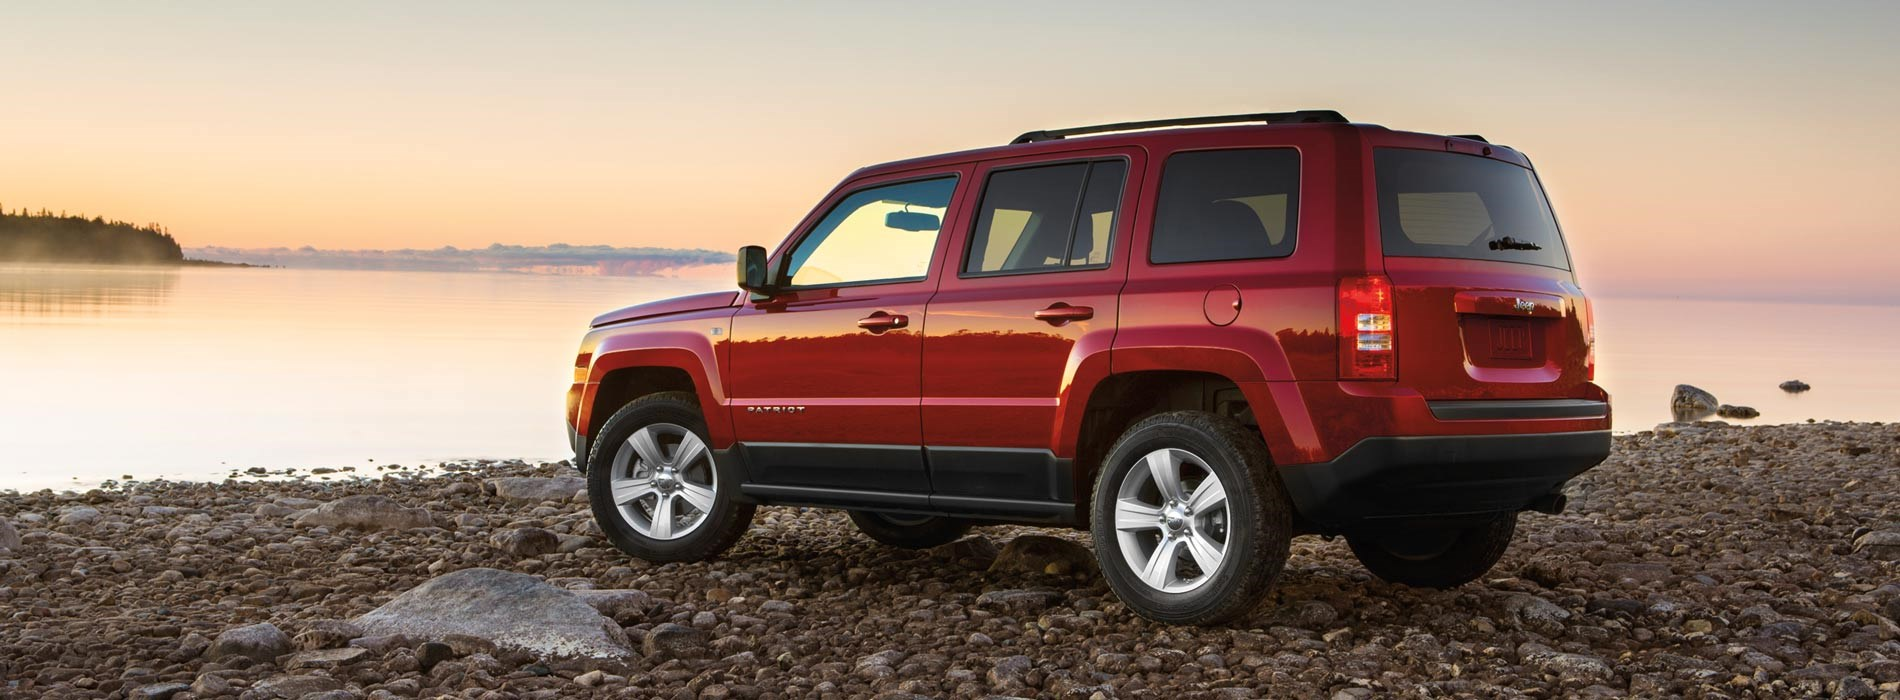 jeep patriot west gosford central coast jeep. Black Bedroom Furniture Sets. Home Design Ideas